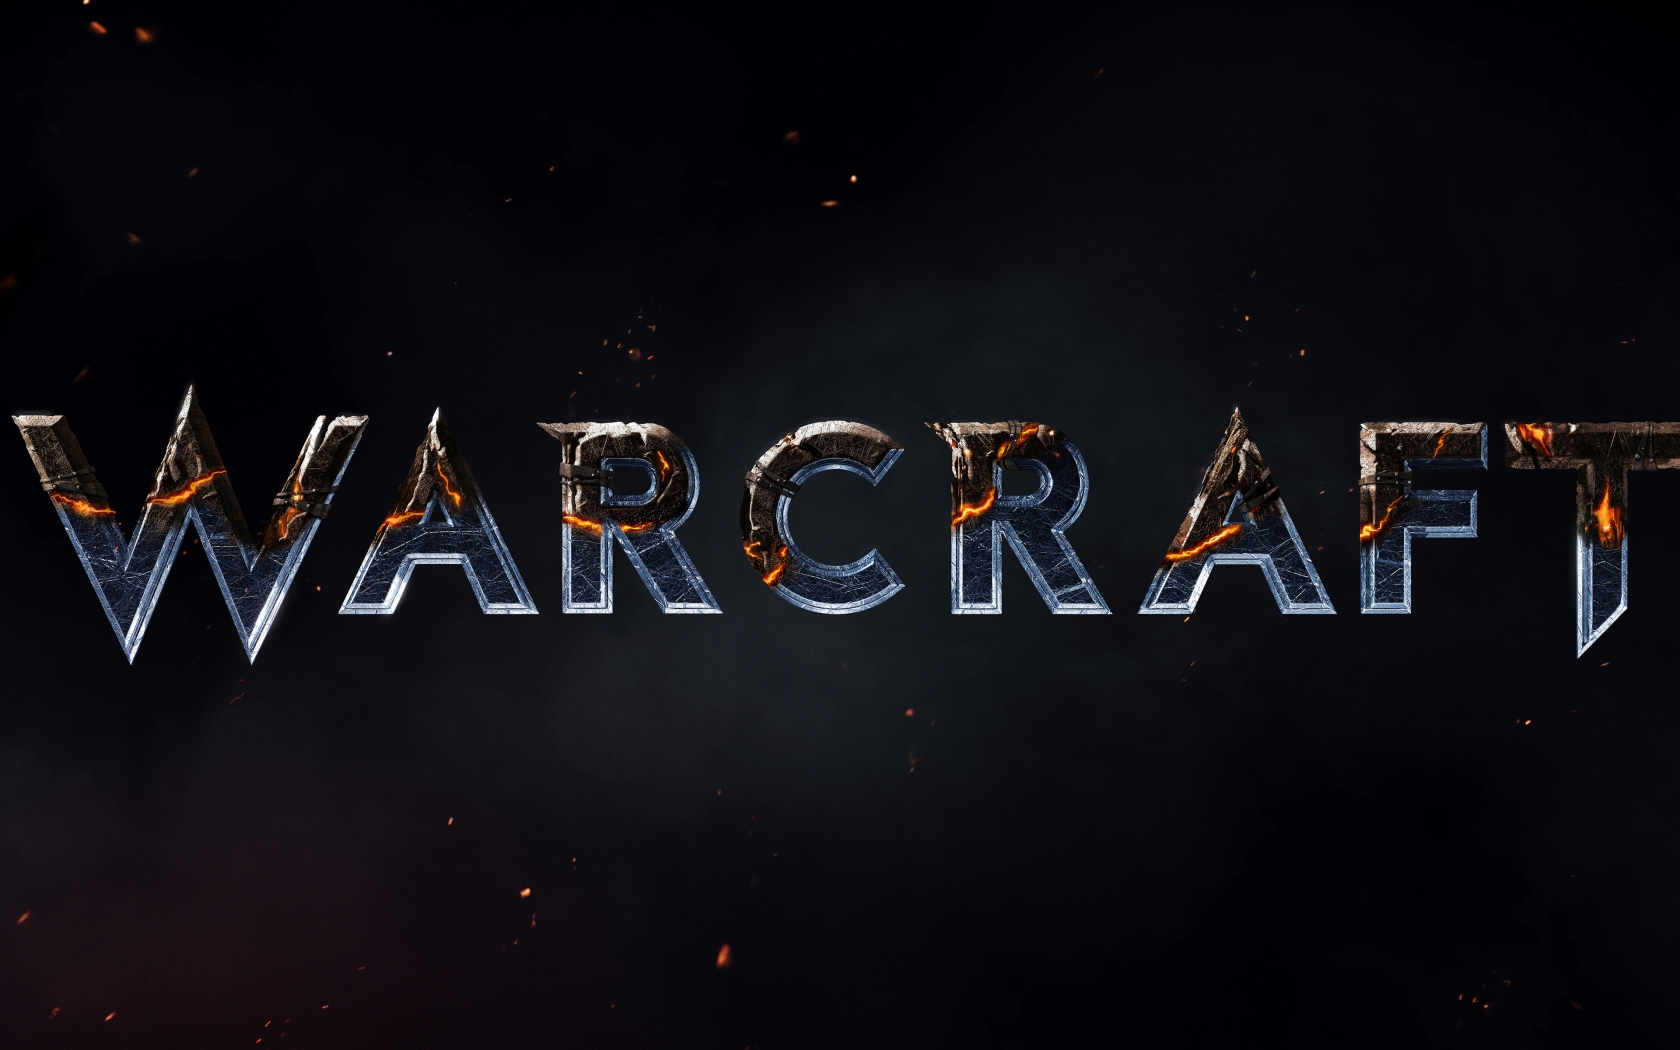 Warcraft Movie 2016 for 1680 x 1050 widescreen resolution